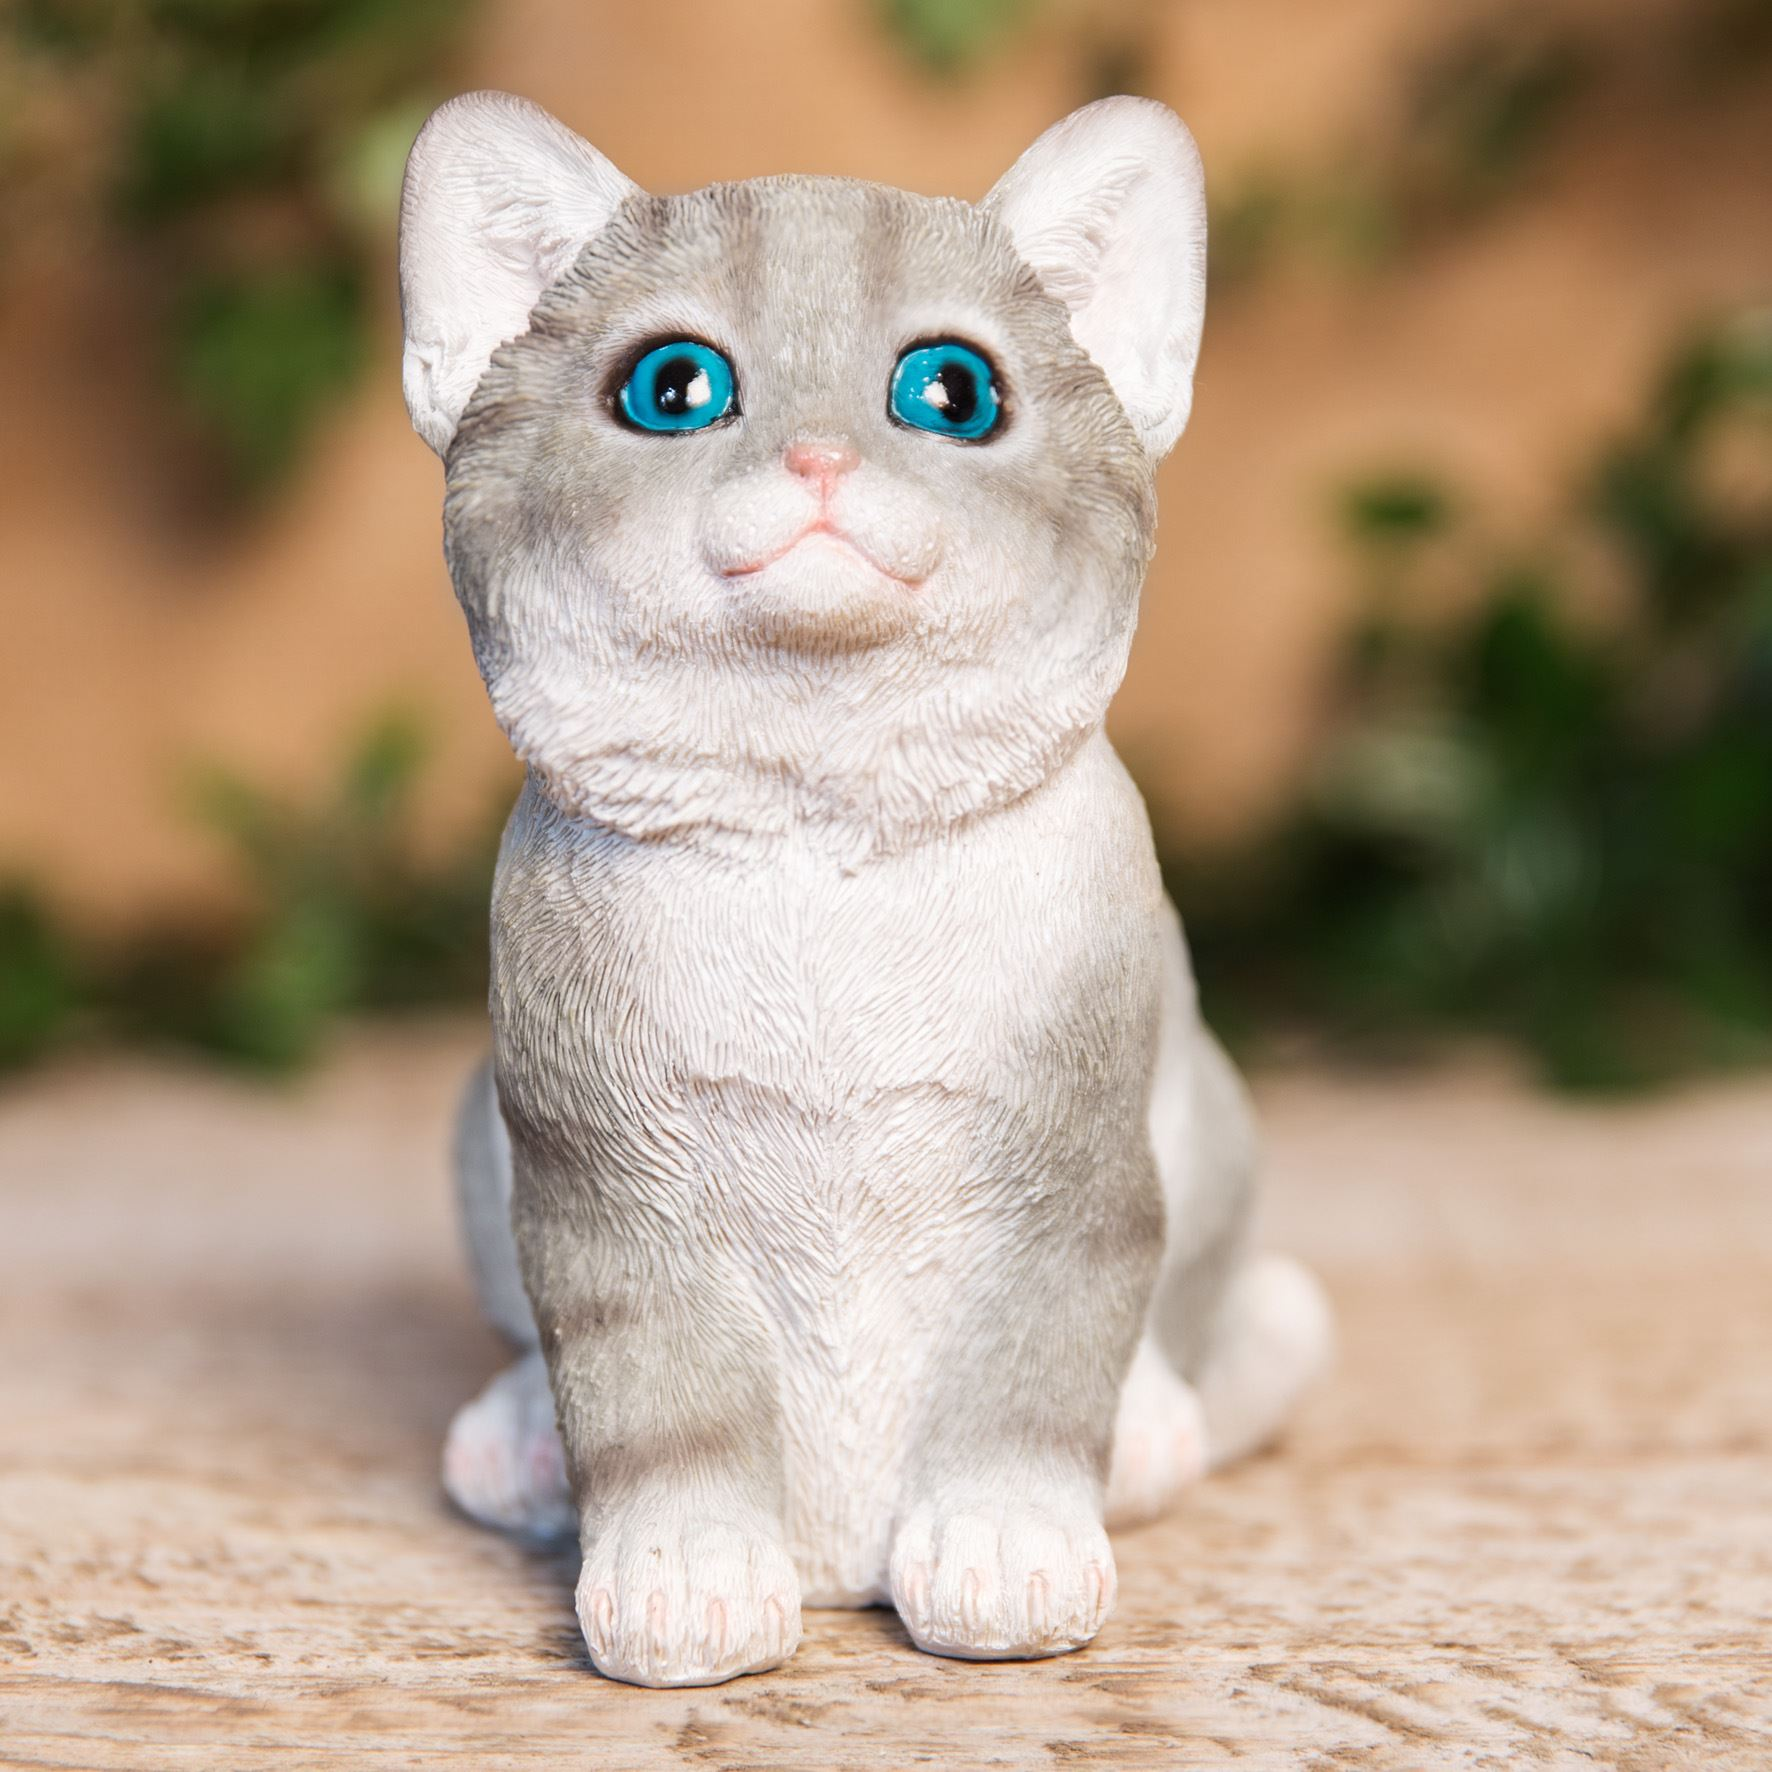 Best Of Breed Collection - Grey & White Kitten Figurine - Best Of Breed